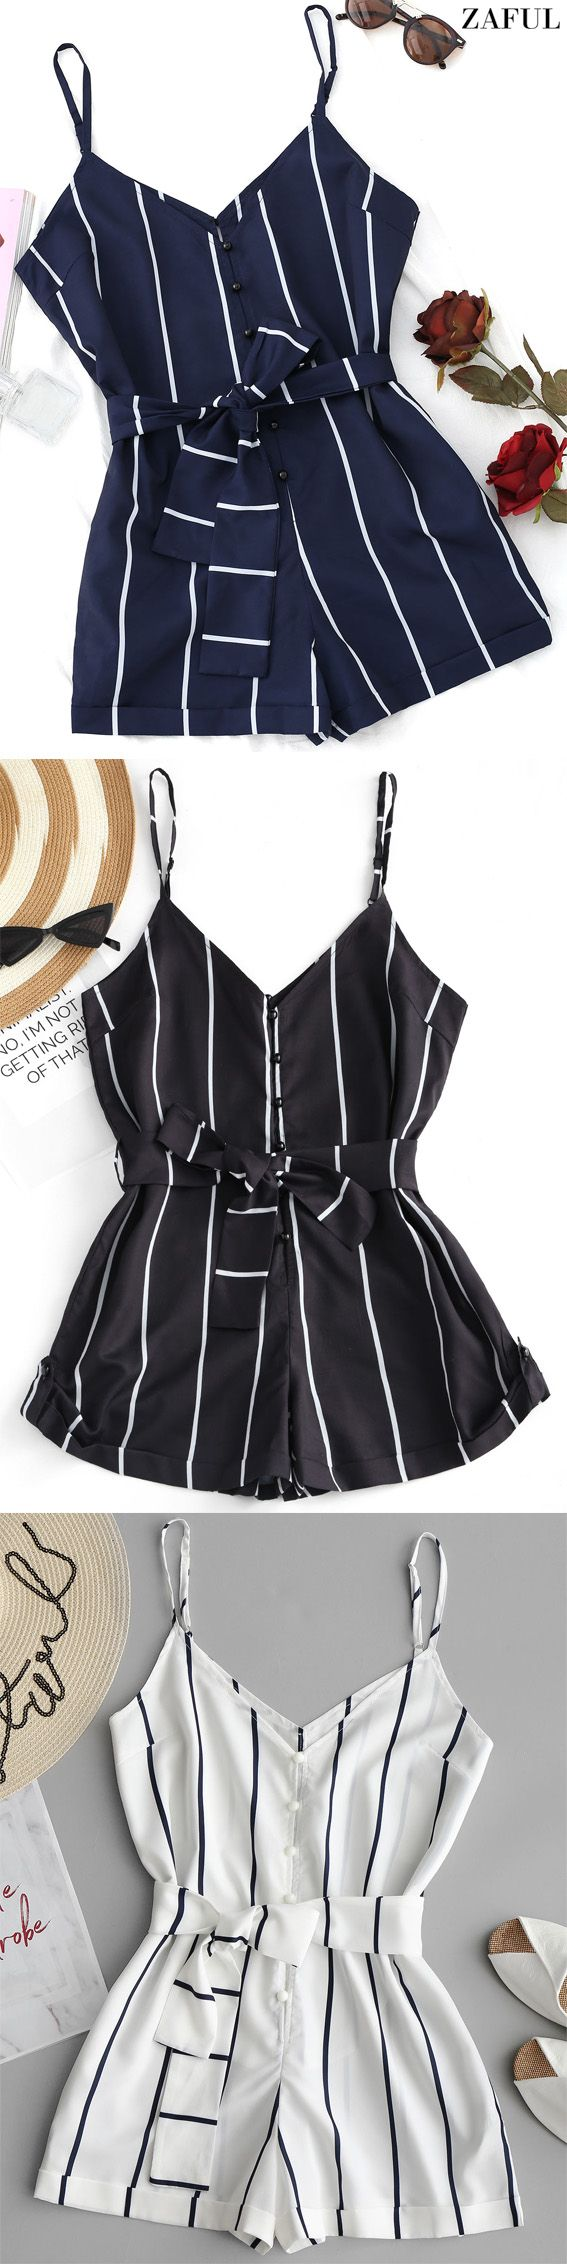 Up to 80% OFF! Striped Belted Cami Romper. #Zaful #Twopieces #Tops zaful,zaful outfits,zaful tops,spring outfits,summer dresses,easter,easter outfits,super bowl,st patrick's day,cute,casual,fashion,style,cute rompers, denim jumpsuit, dressy jumpsuits, jumpsuits, pantsuits, petite jumpsuit, playsuits, rompers, sequin jumpsuit, shorts, shorts and tights, skirt, tops, two piece dresses, two piece outfits, bottoms, pants outfits @zaful Extra 10% OFF Code:ZF2017